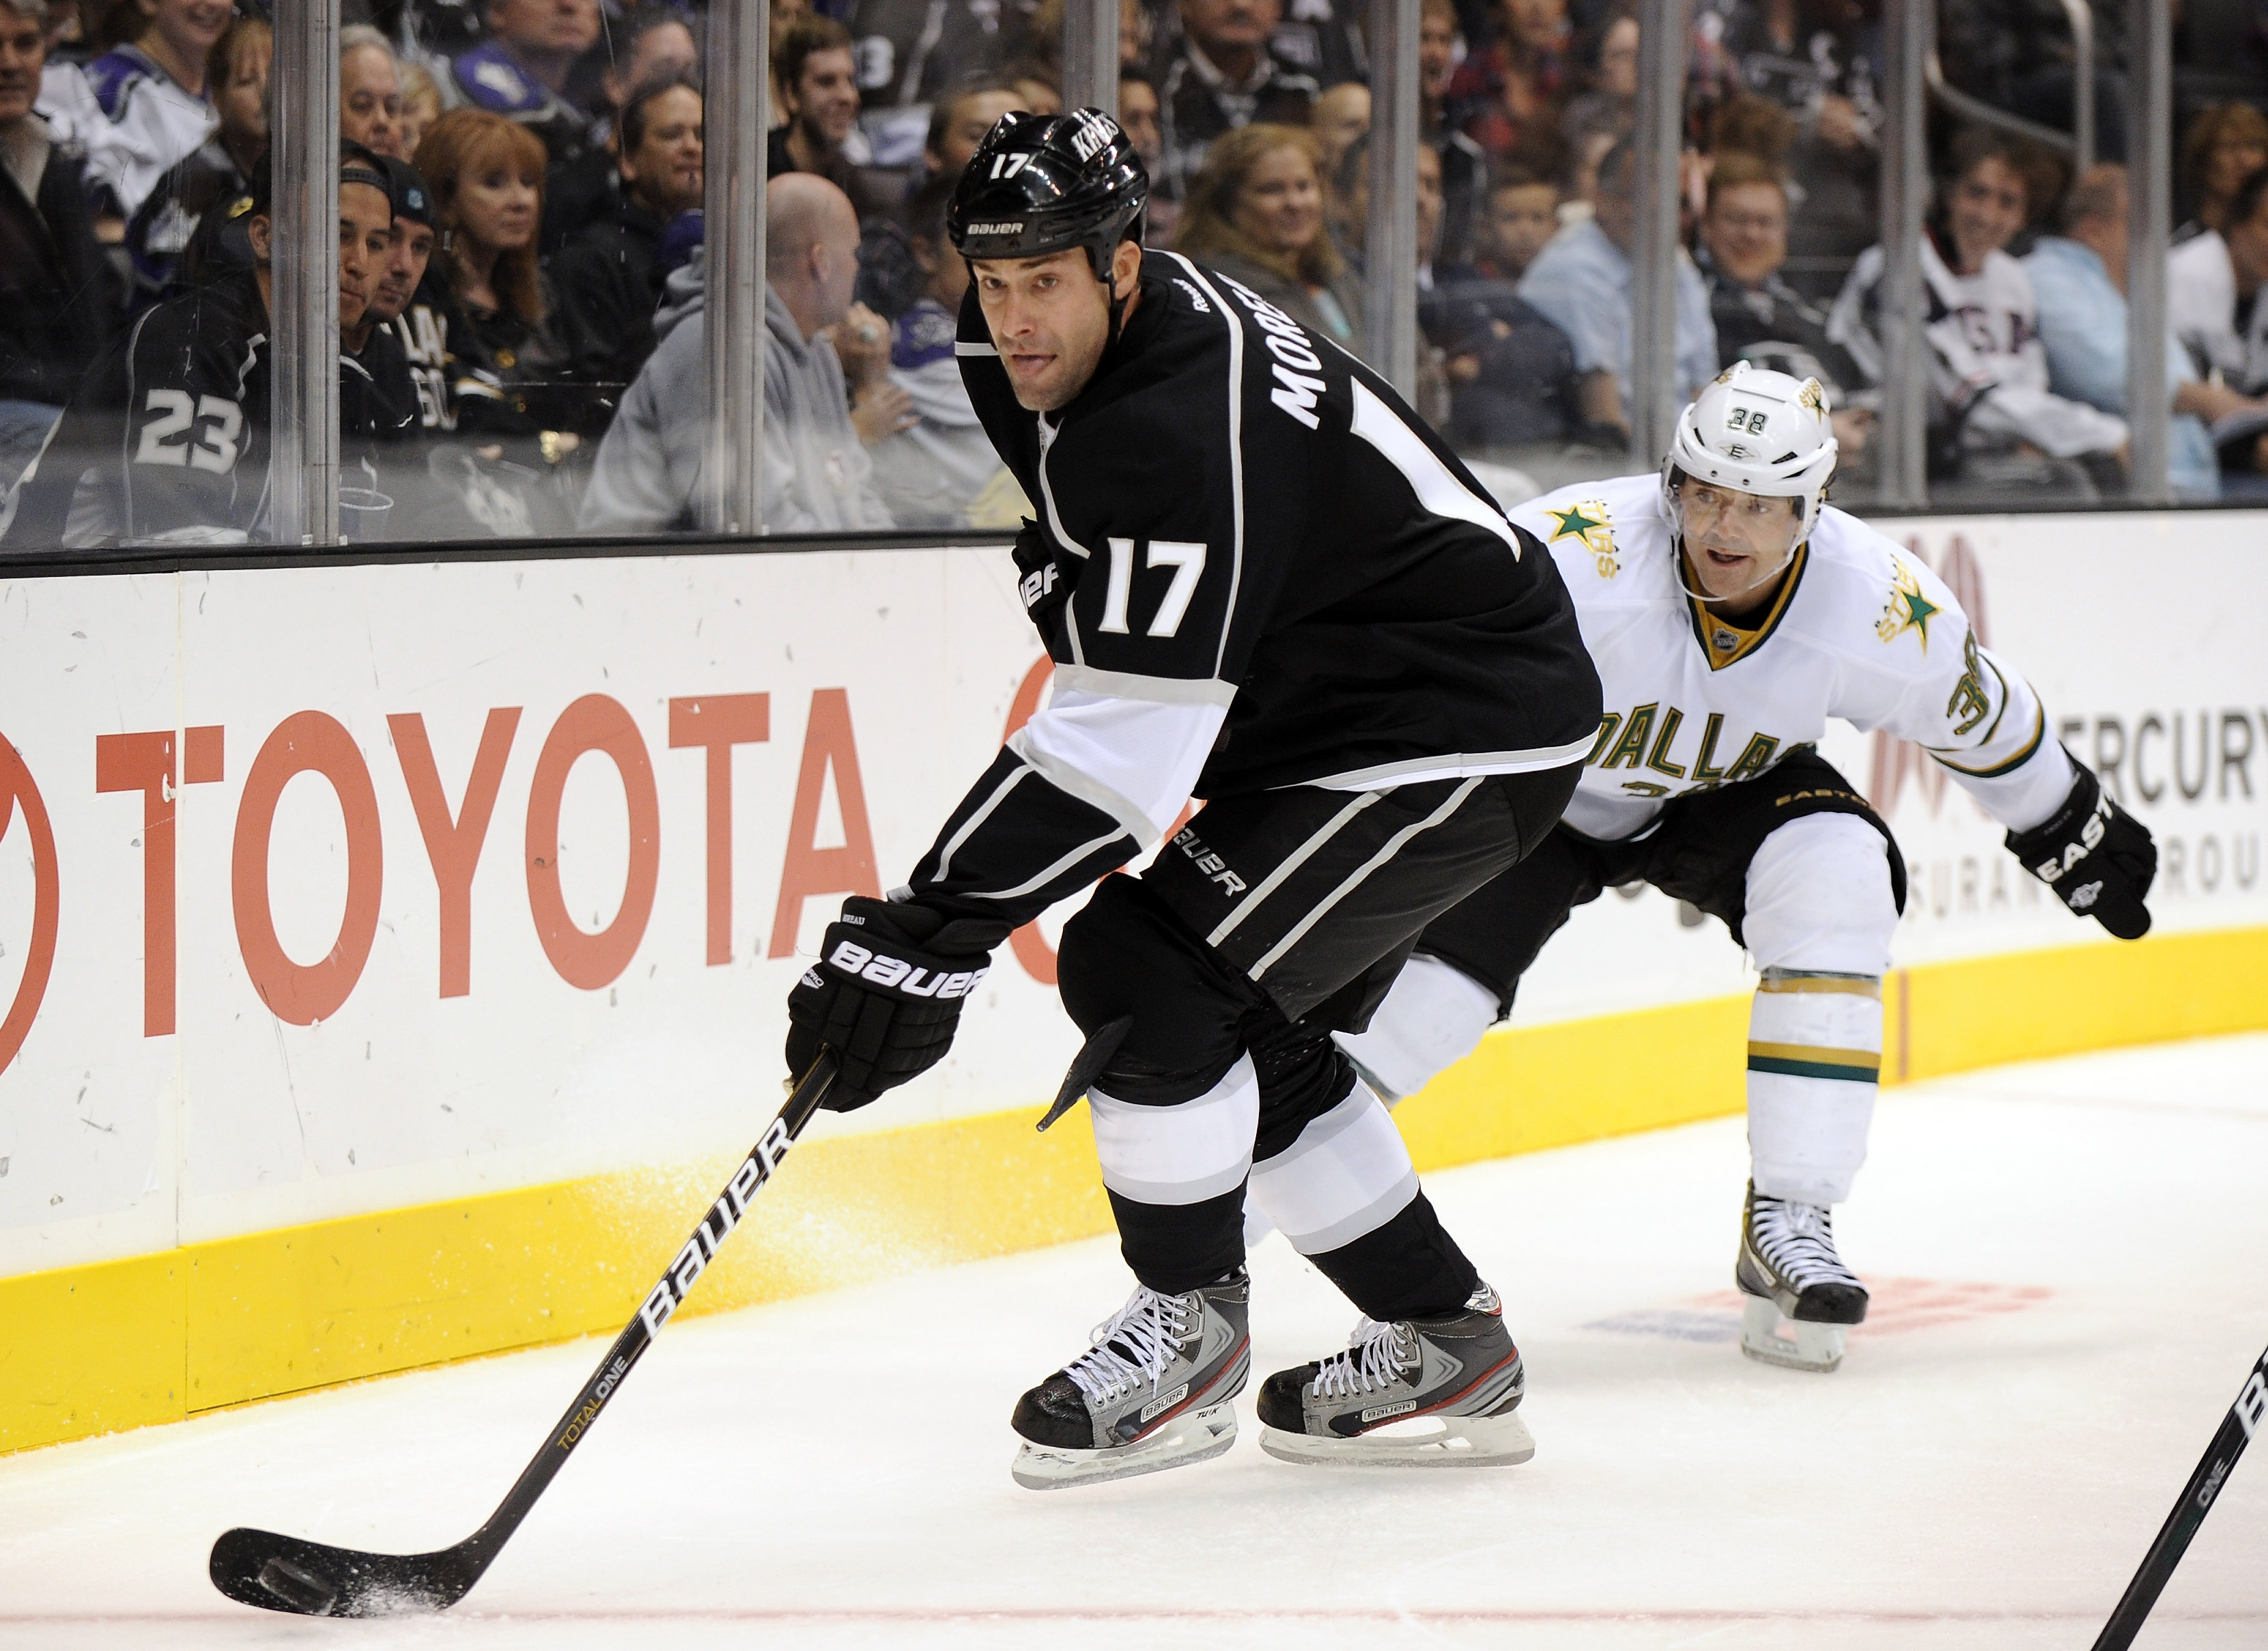 Ethan Moreau played his final season in the NHL for the L.A. Kings. He is reportedly a finalist for the head coaching job at Niagara.  (Getty Images)